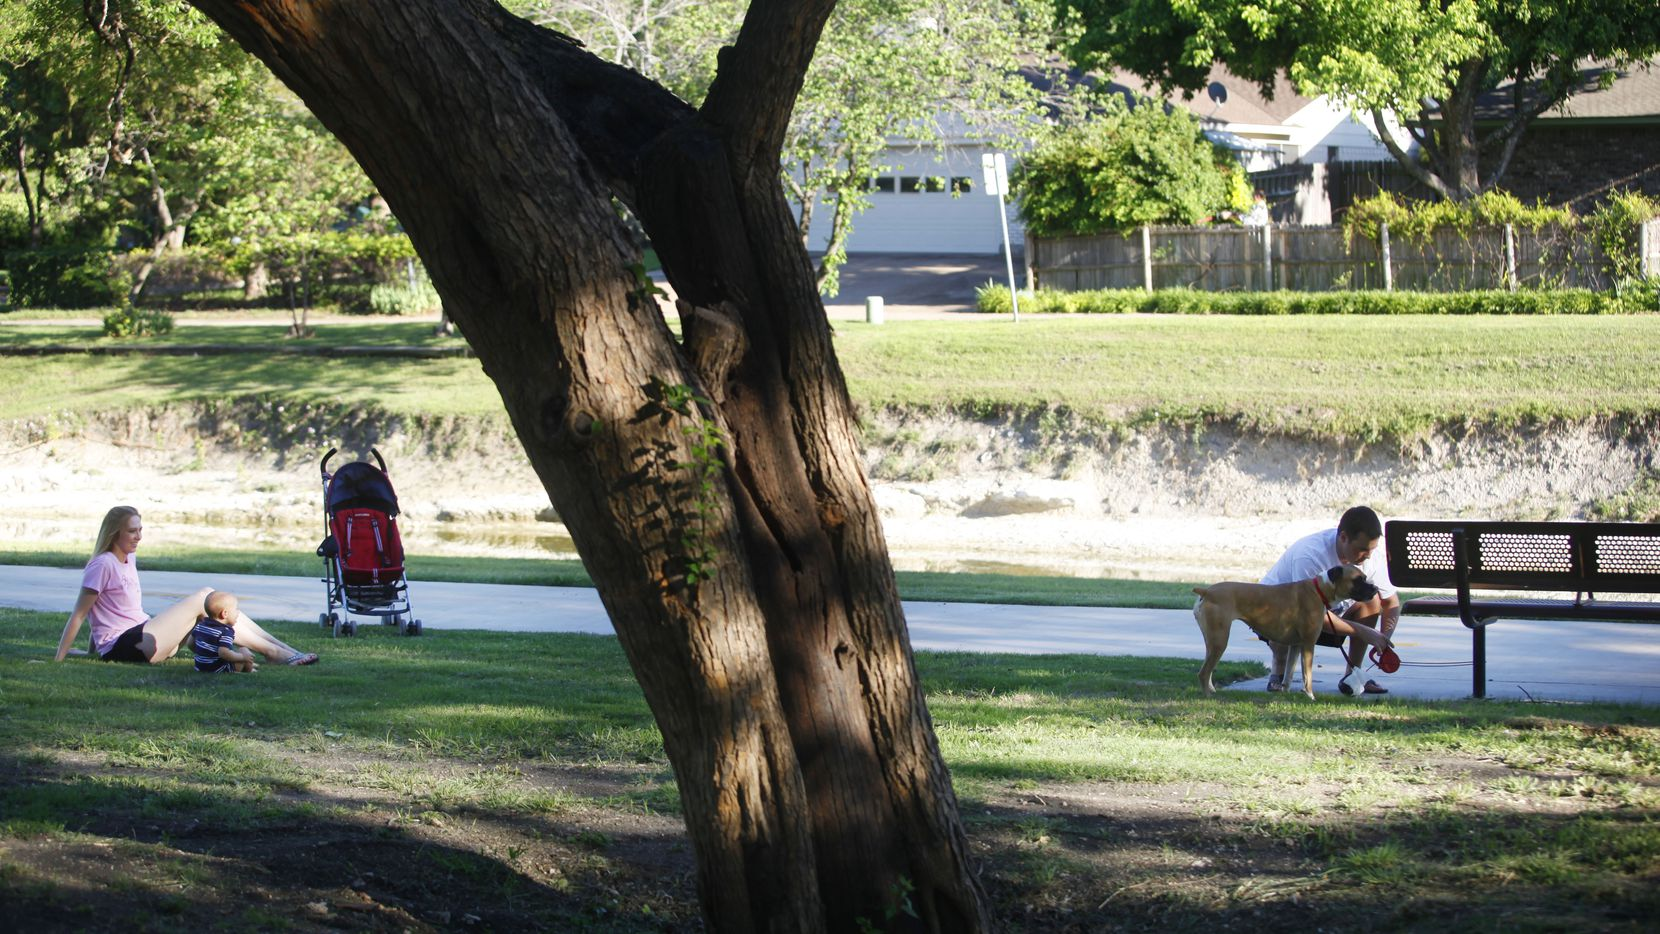 In this 2011 file photo, a family takes a break in the shade while walking the trail in a residential area that connects Huffhines Park with Duck Creek Linear Park in Richardson. This area is near where sidewalk construction will be occurring on Plano Road between Arapaho and Apollo roads.